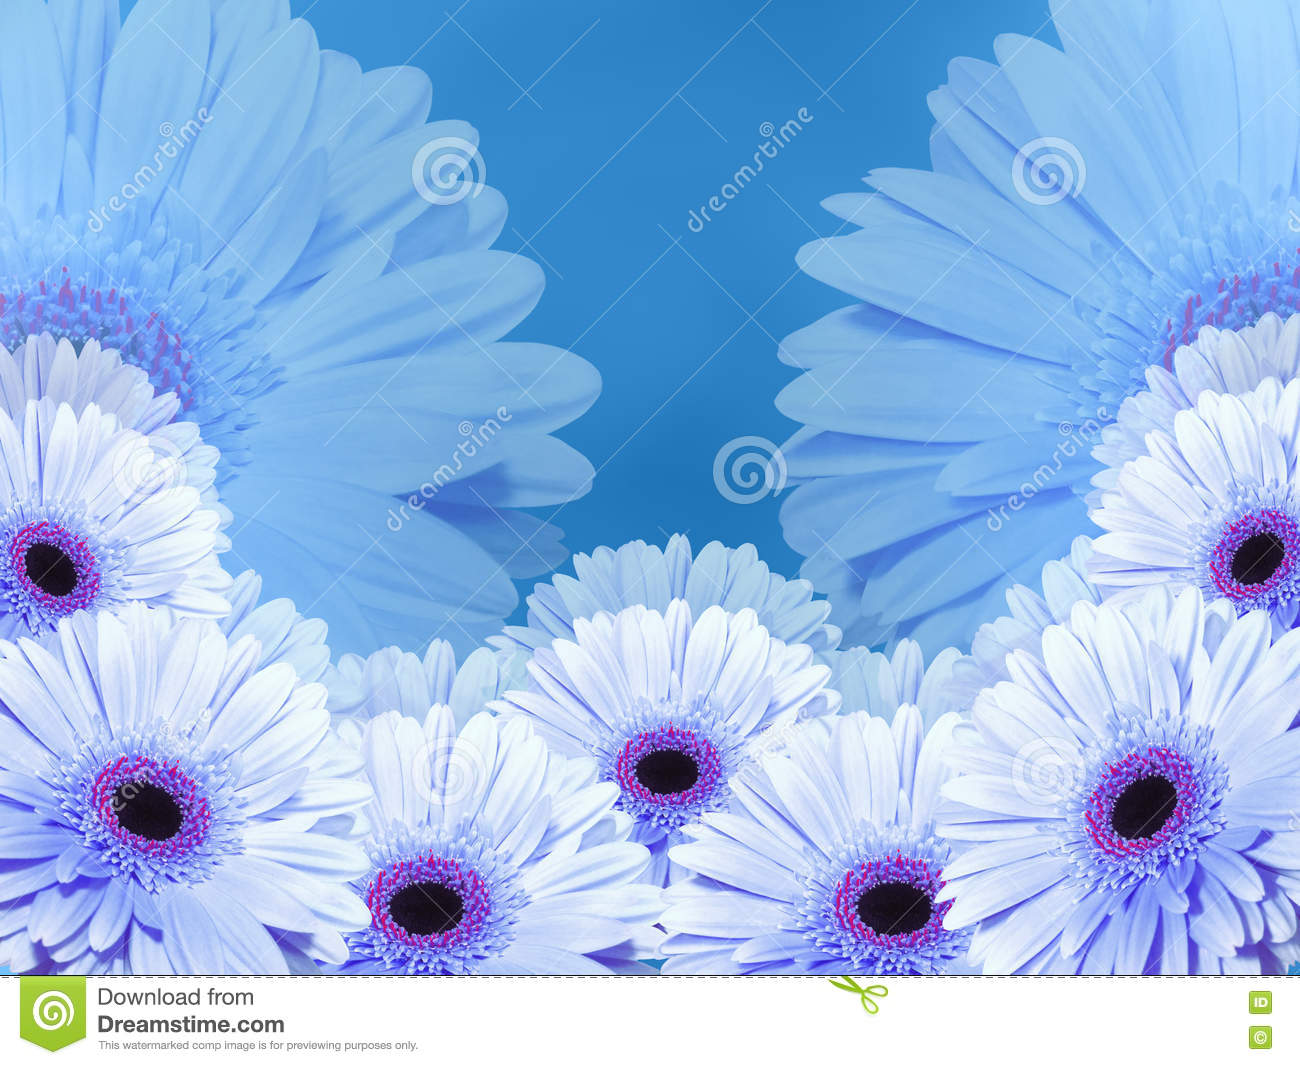 White Blue Flowers On Blue Blurred Background Closeup Collage Of